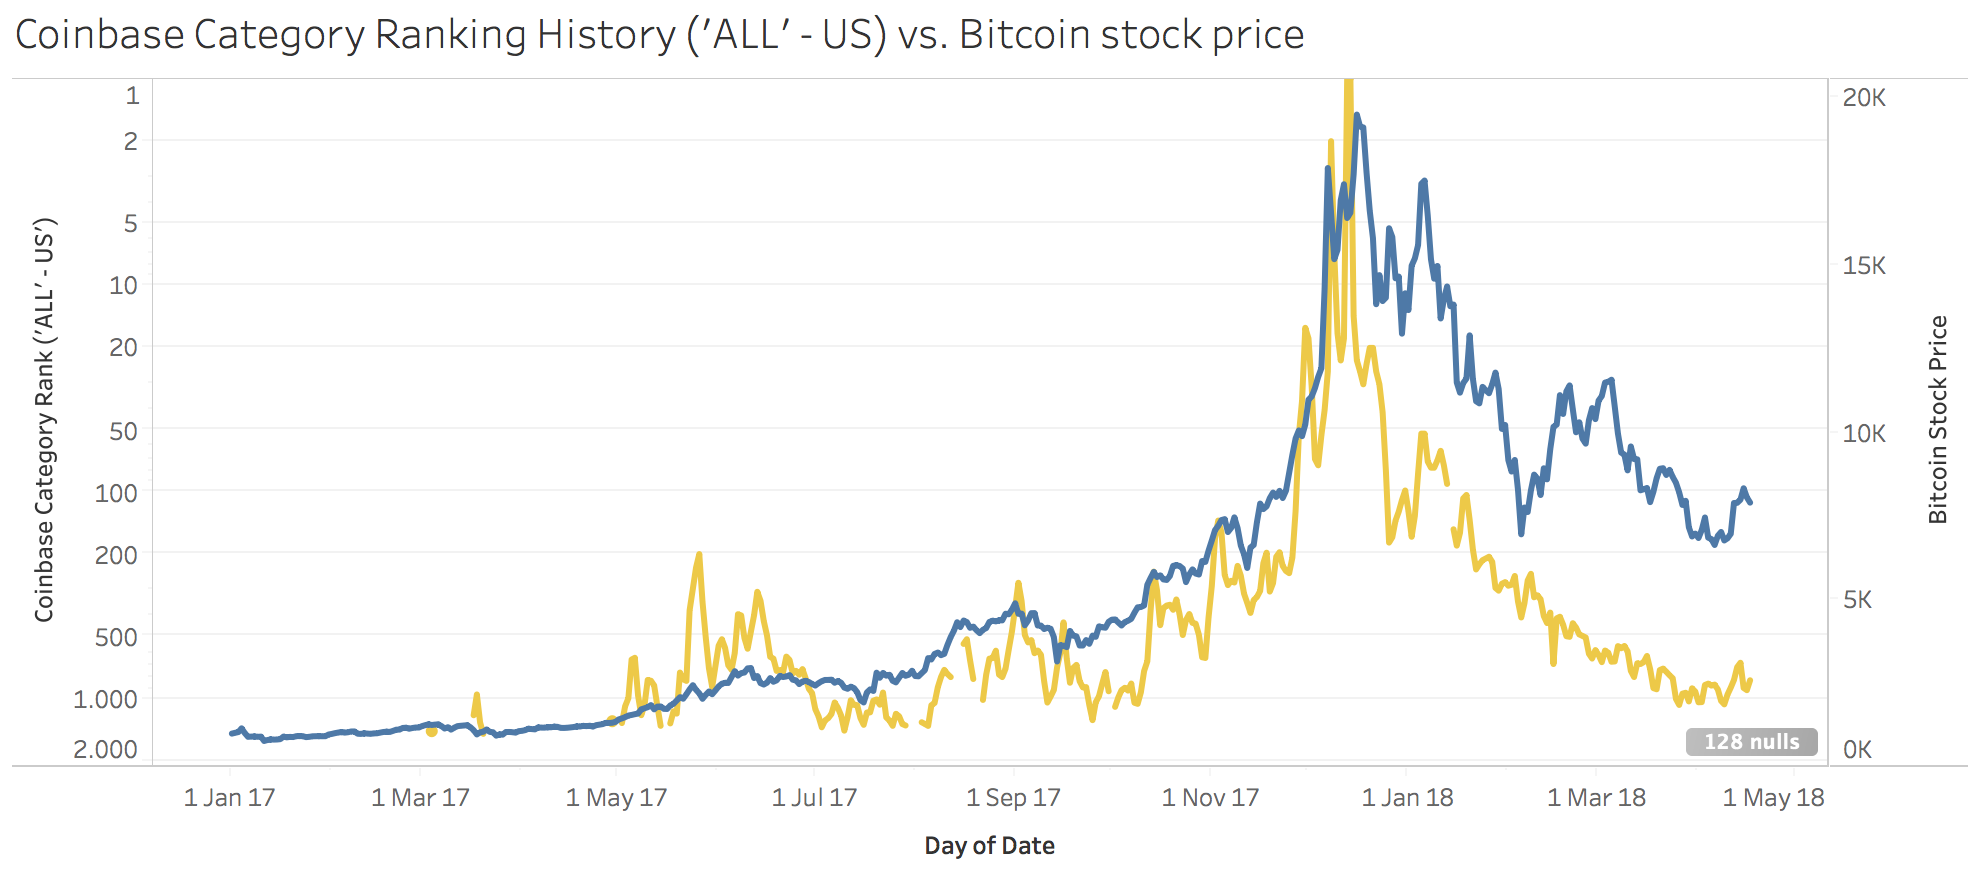 Coinbase's category ranking against the BTC value